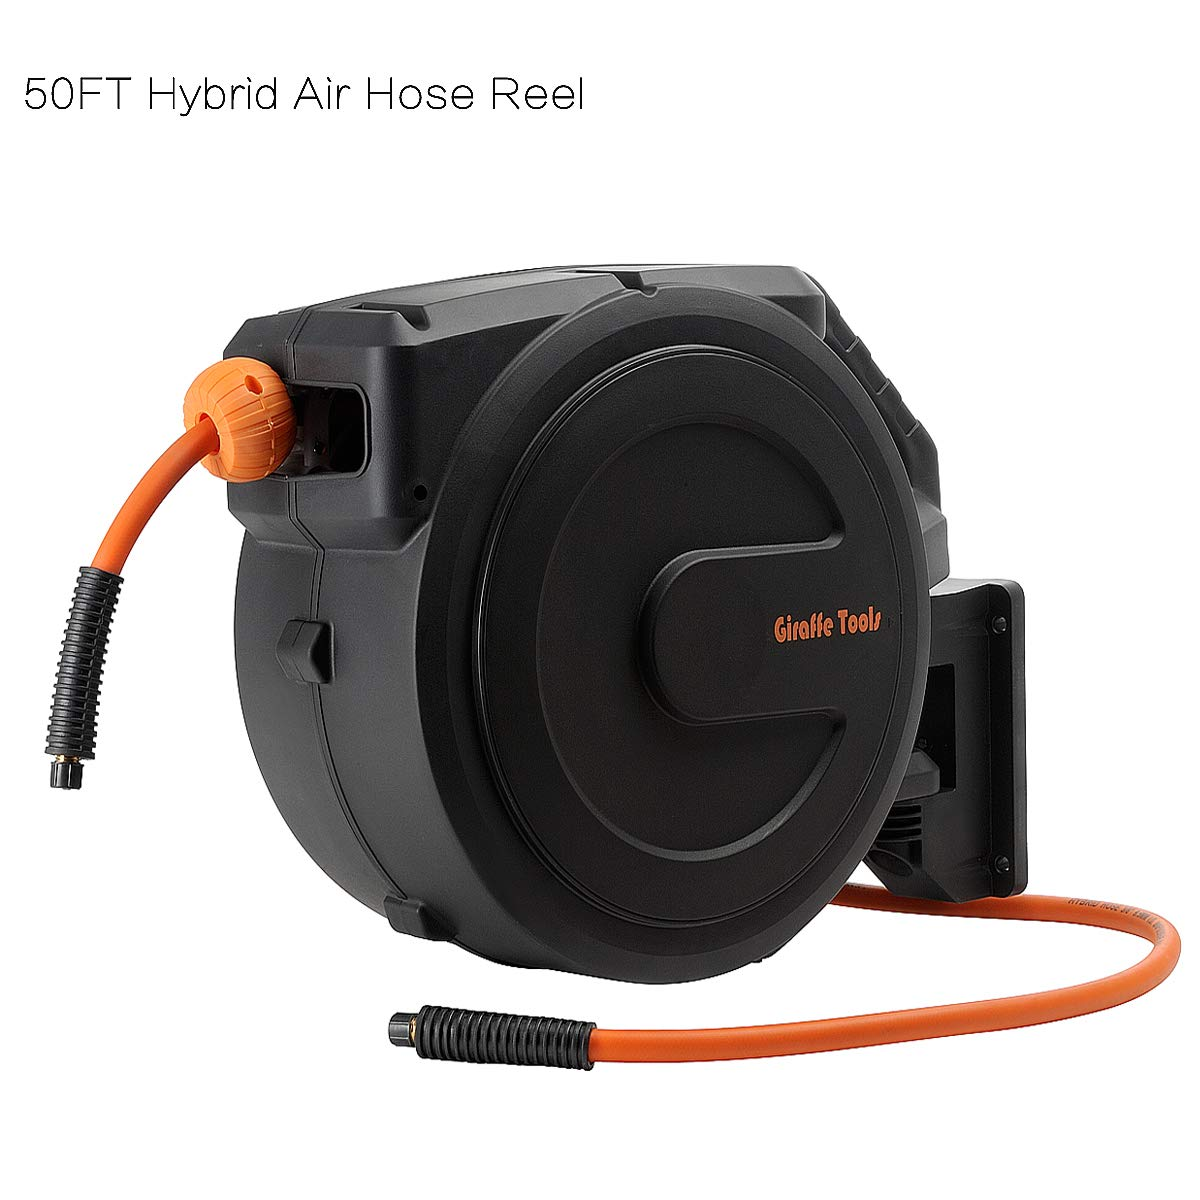 Air-Hose-Reel with 3/8 In. x 50 Ft Hybrid Air Hose,Retractable Wall Mounted,300PSI Heavy Duty-Reel by Giraffe